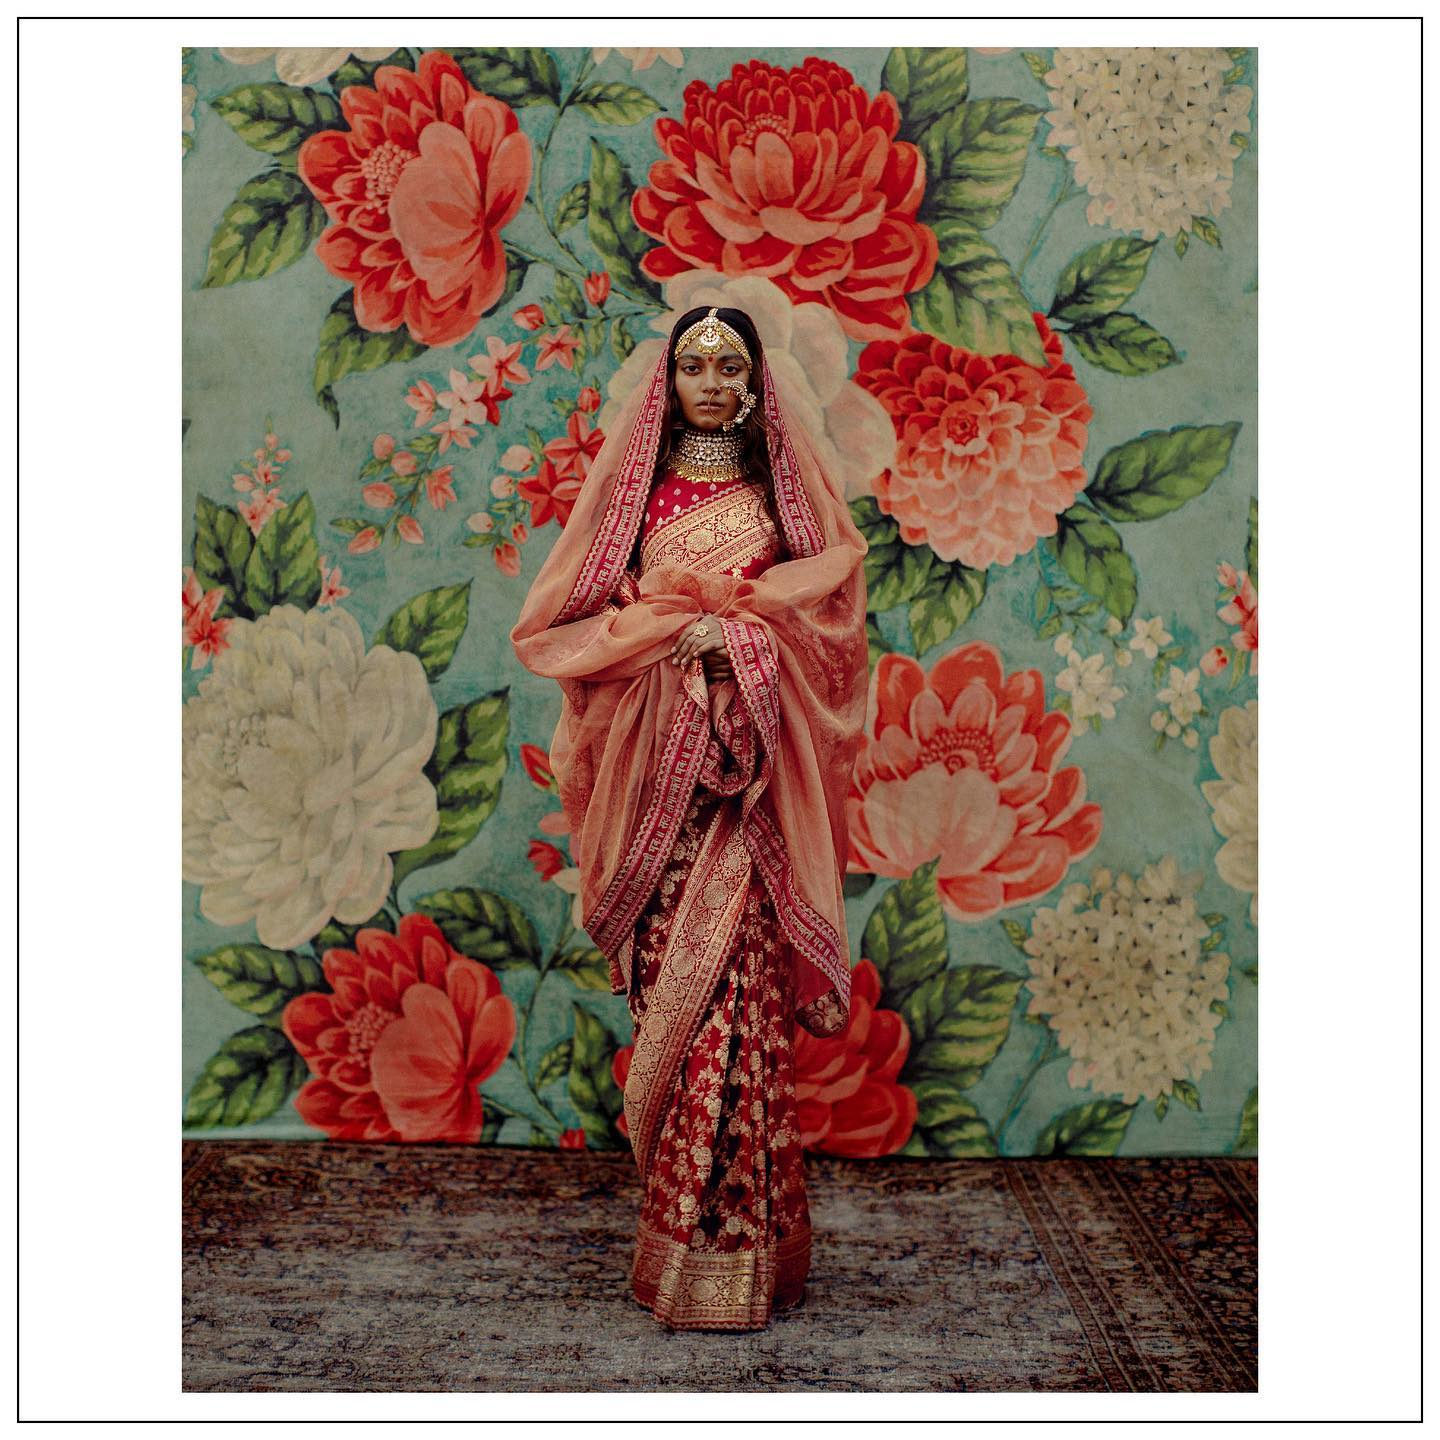 The Sabyasachi 2021 Collection. Beautiful red benarasi saree.   Womenswear and jewellery Sabyasachi jewelry.  For all product related queries please email  at customerservice@sabyasachi.com or contact  retail stores directly.  Email: mumbairetail@sabyasachi.com. 2021-04-13